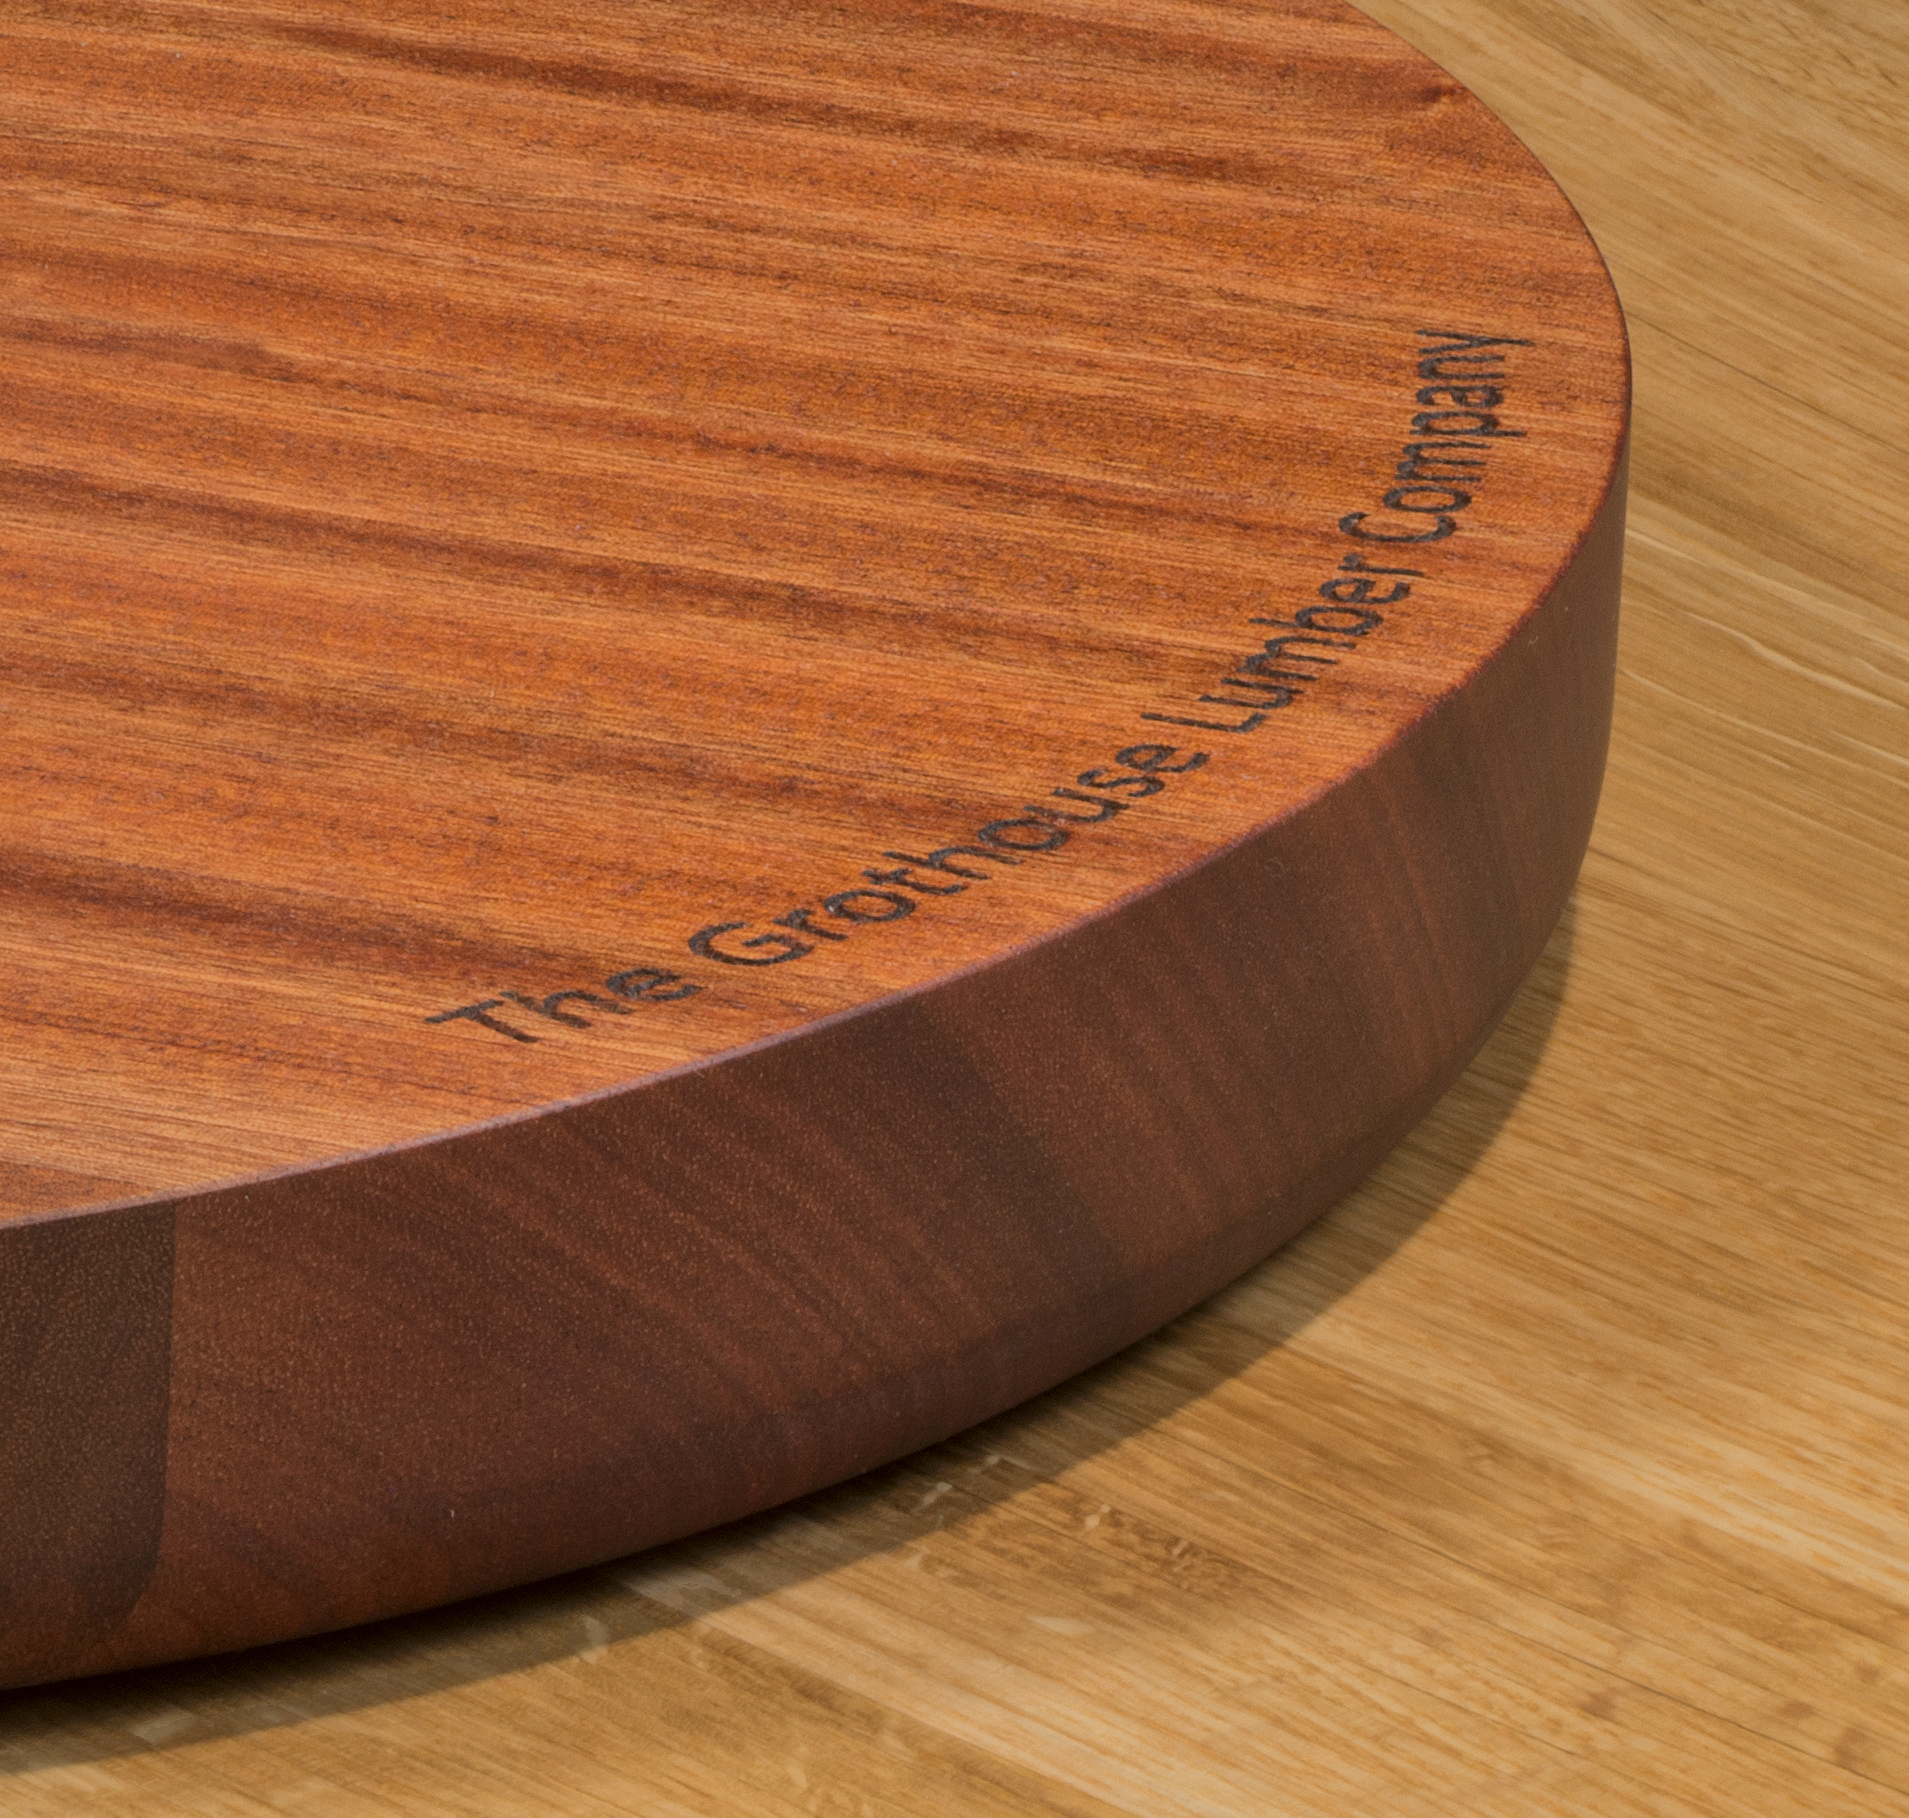 Trencher Cutting Board with Laser Engraving